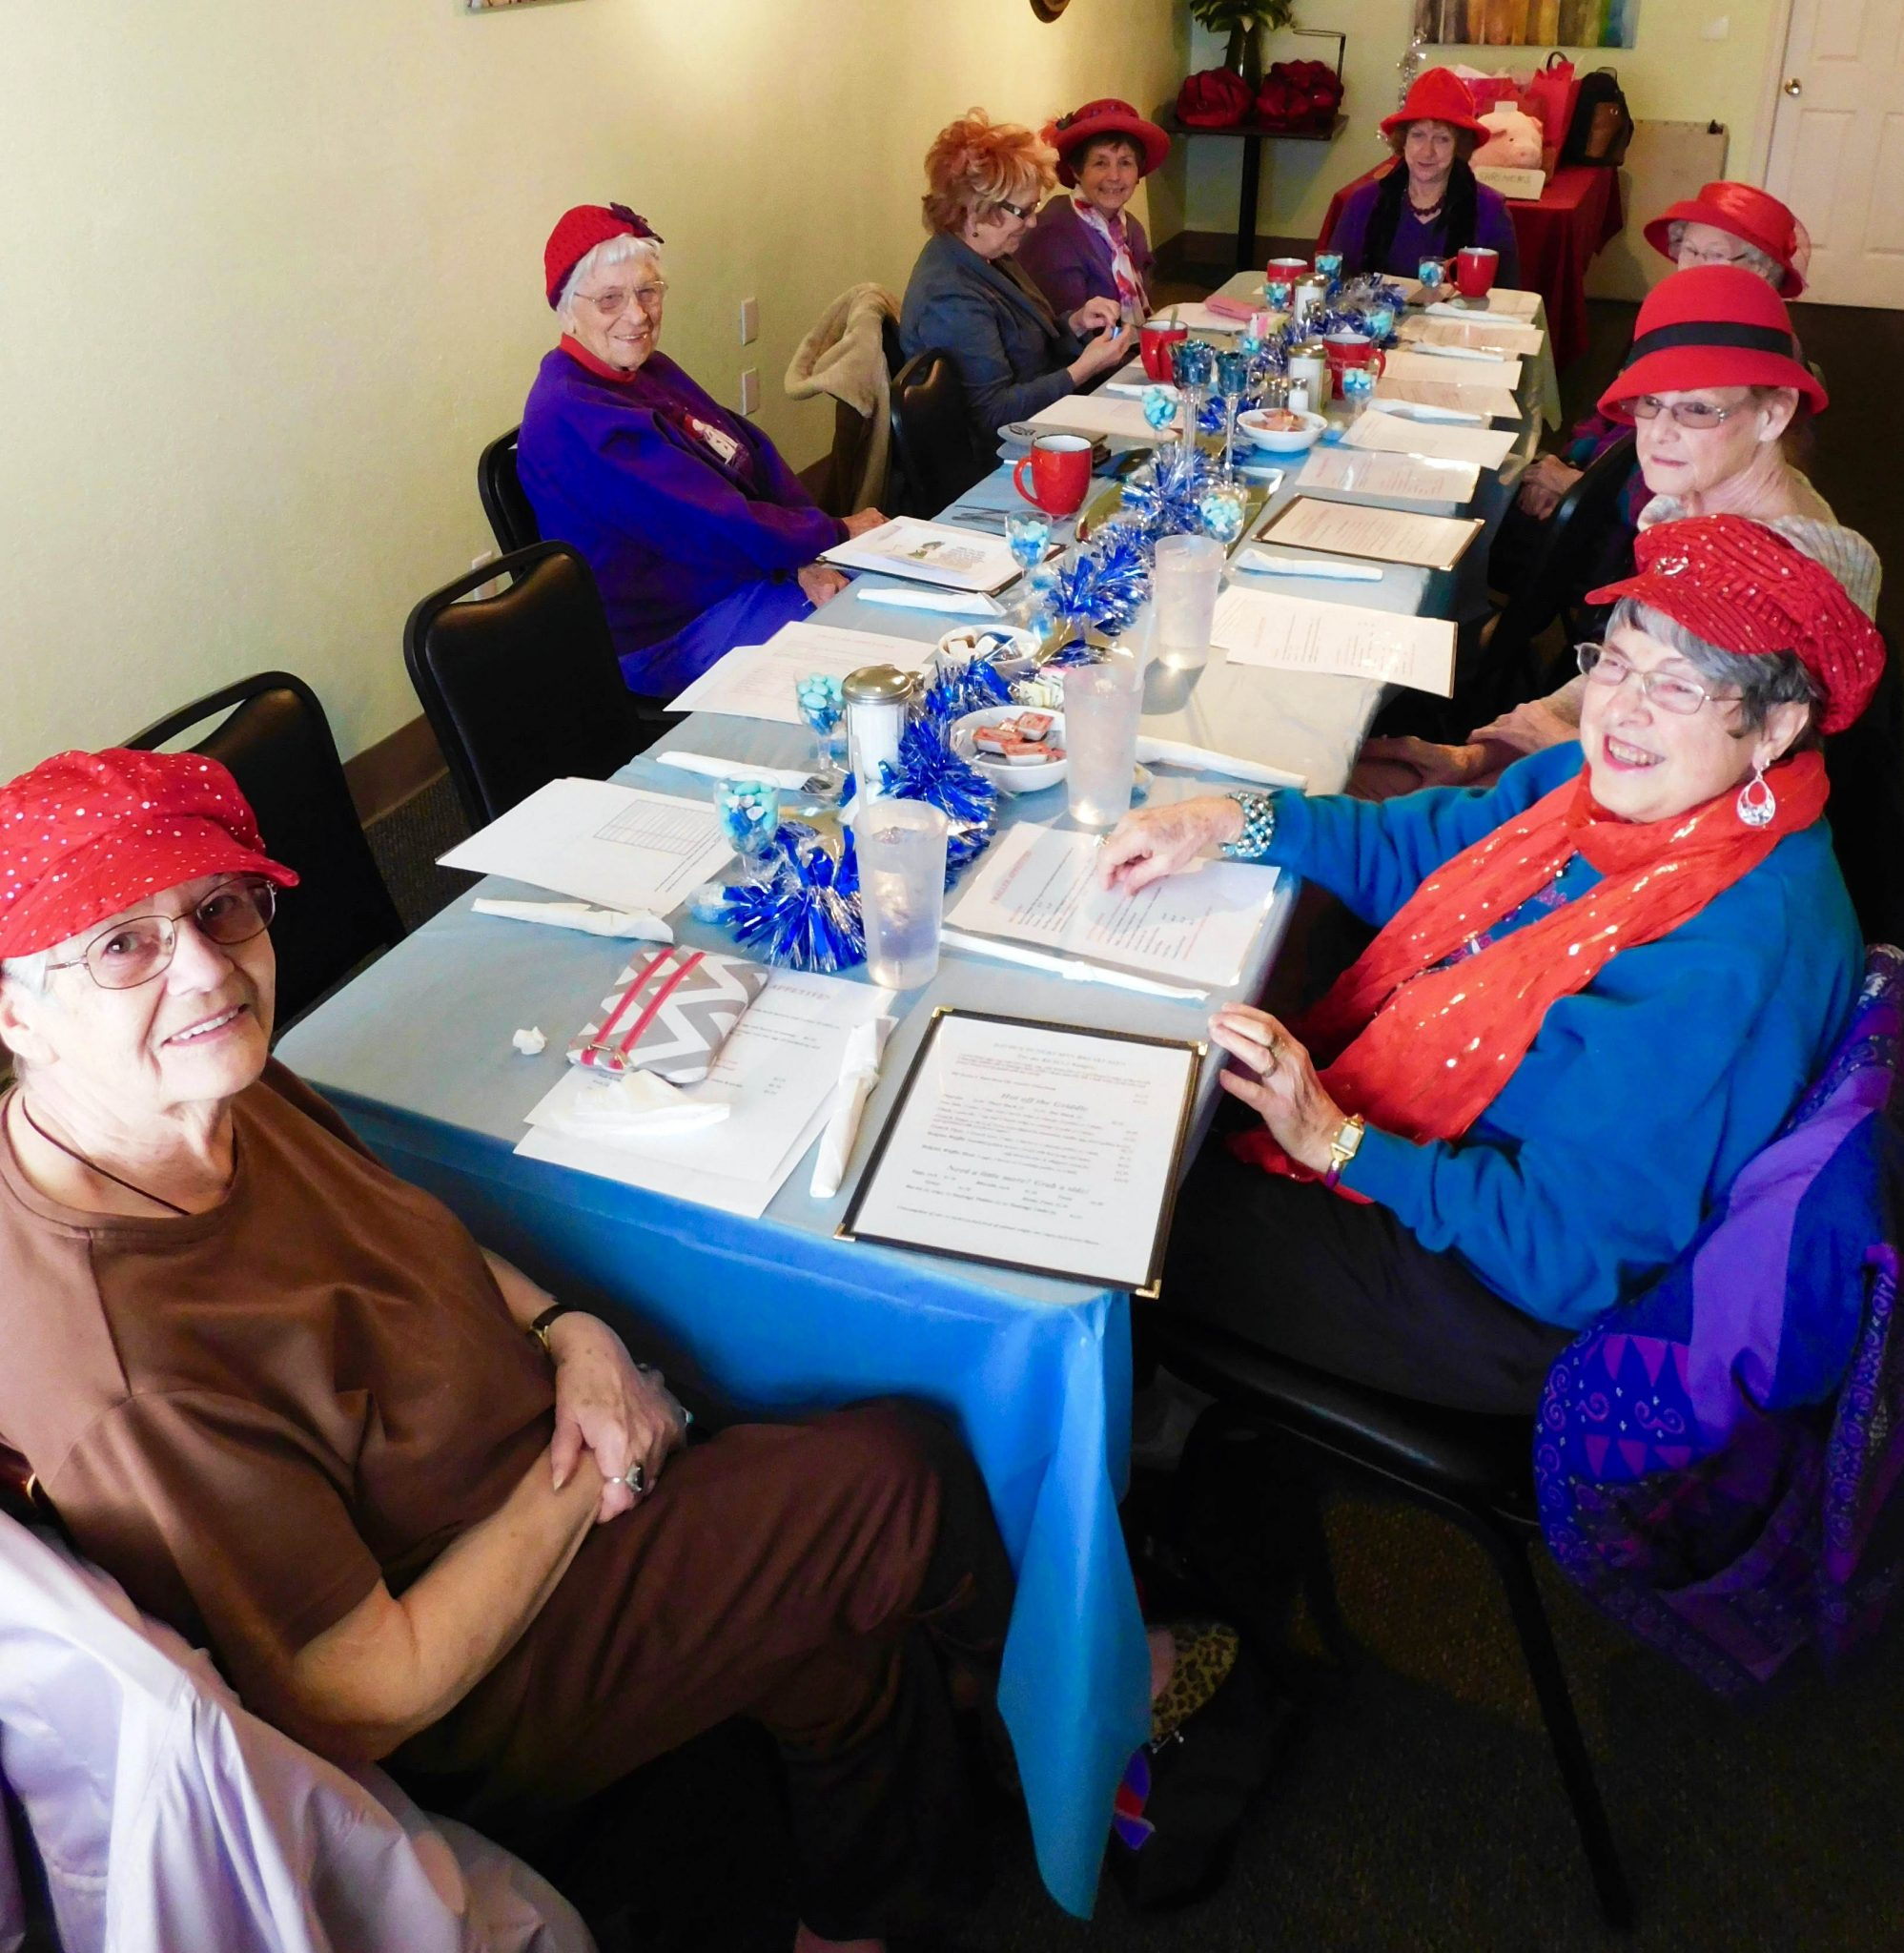 Fun After 55: Mad Hatters Group Still Going Strong After 15 Years